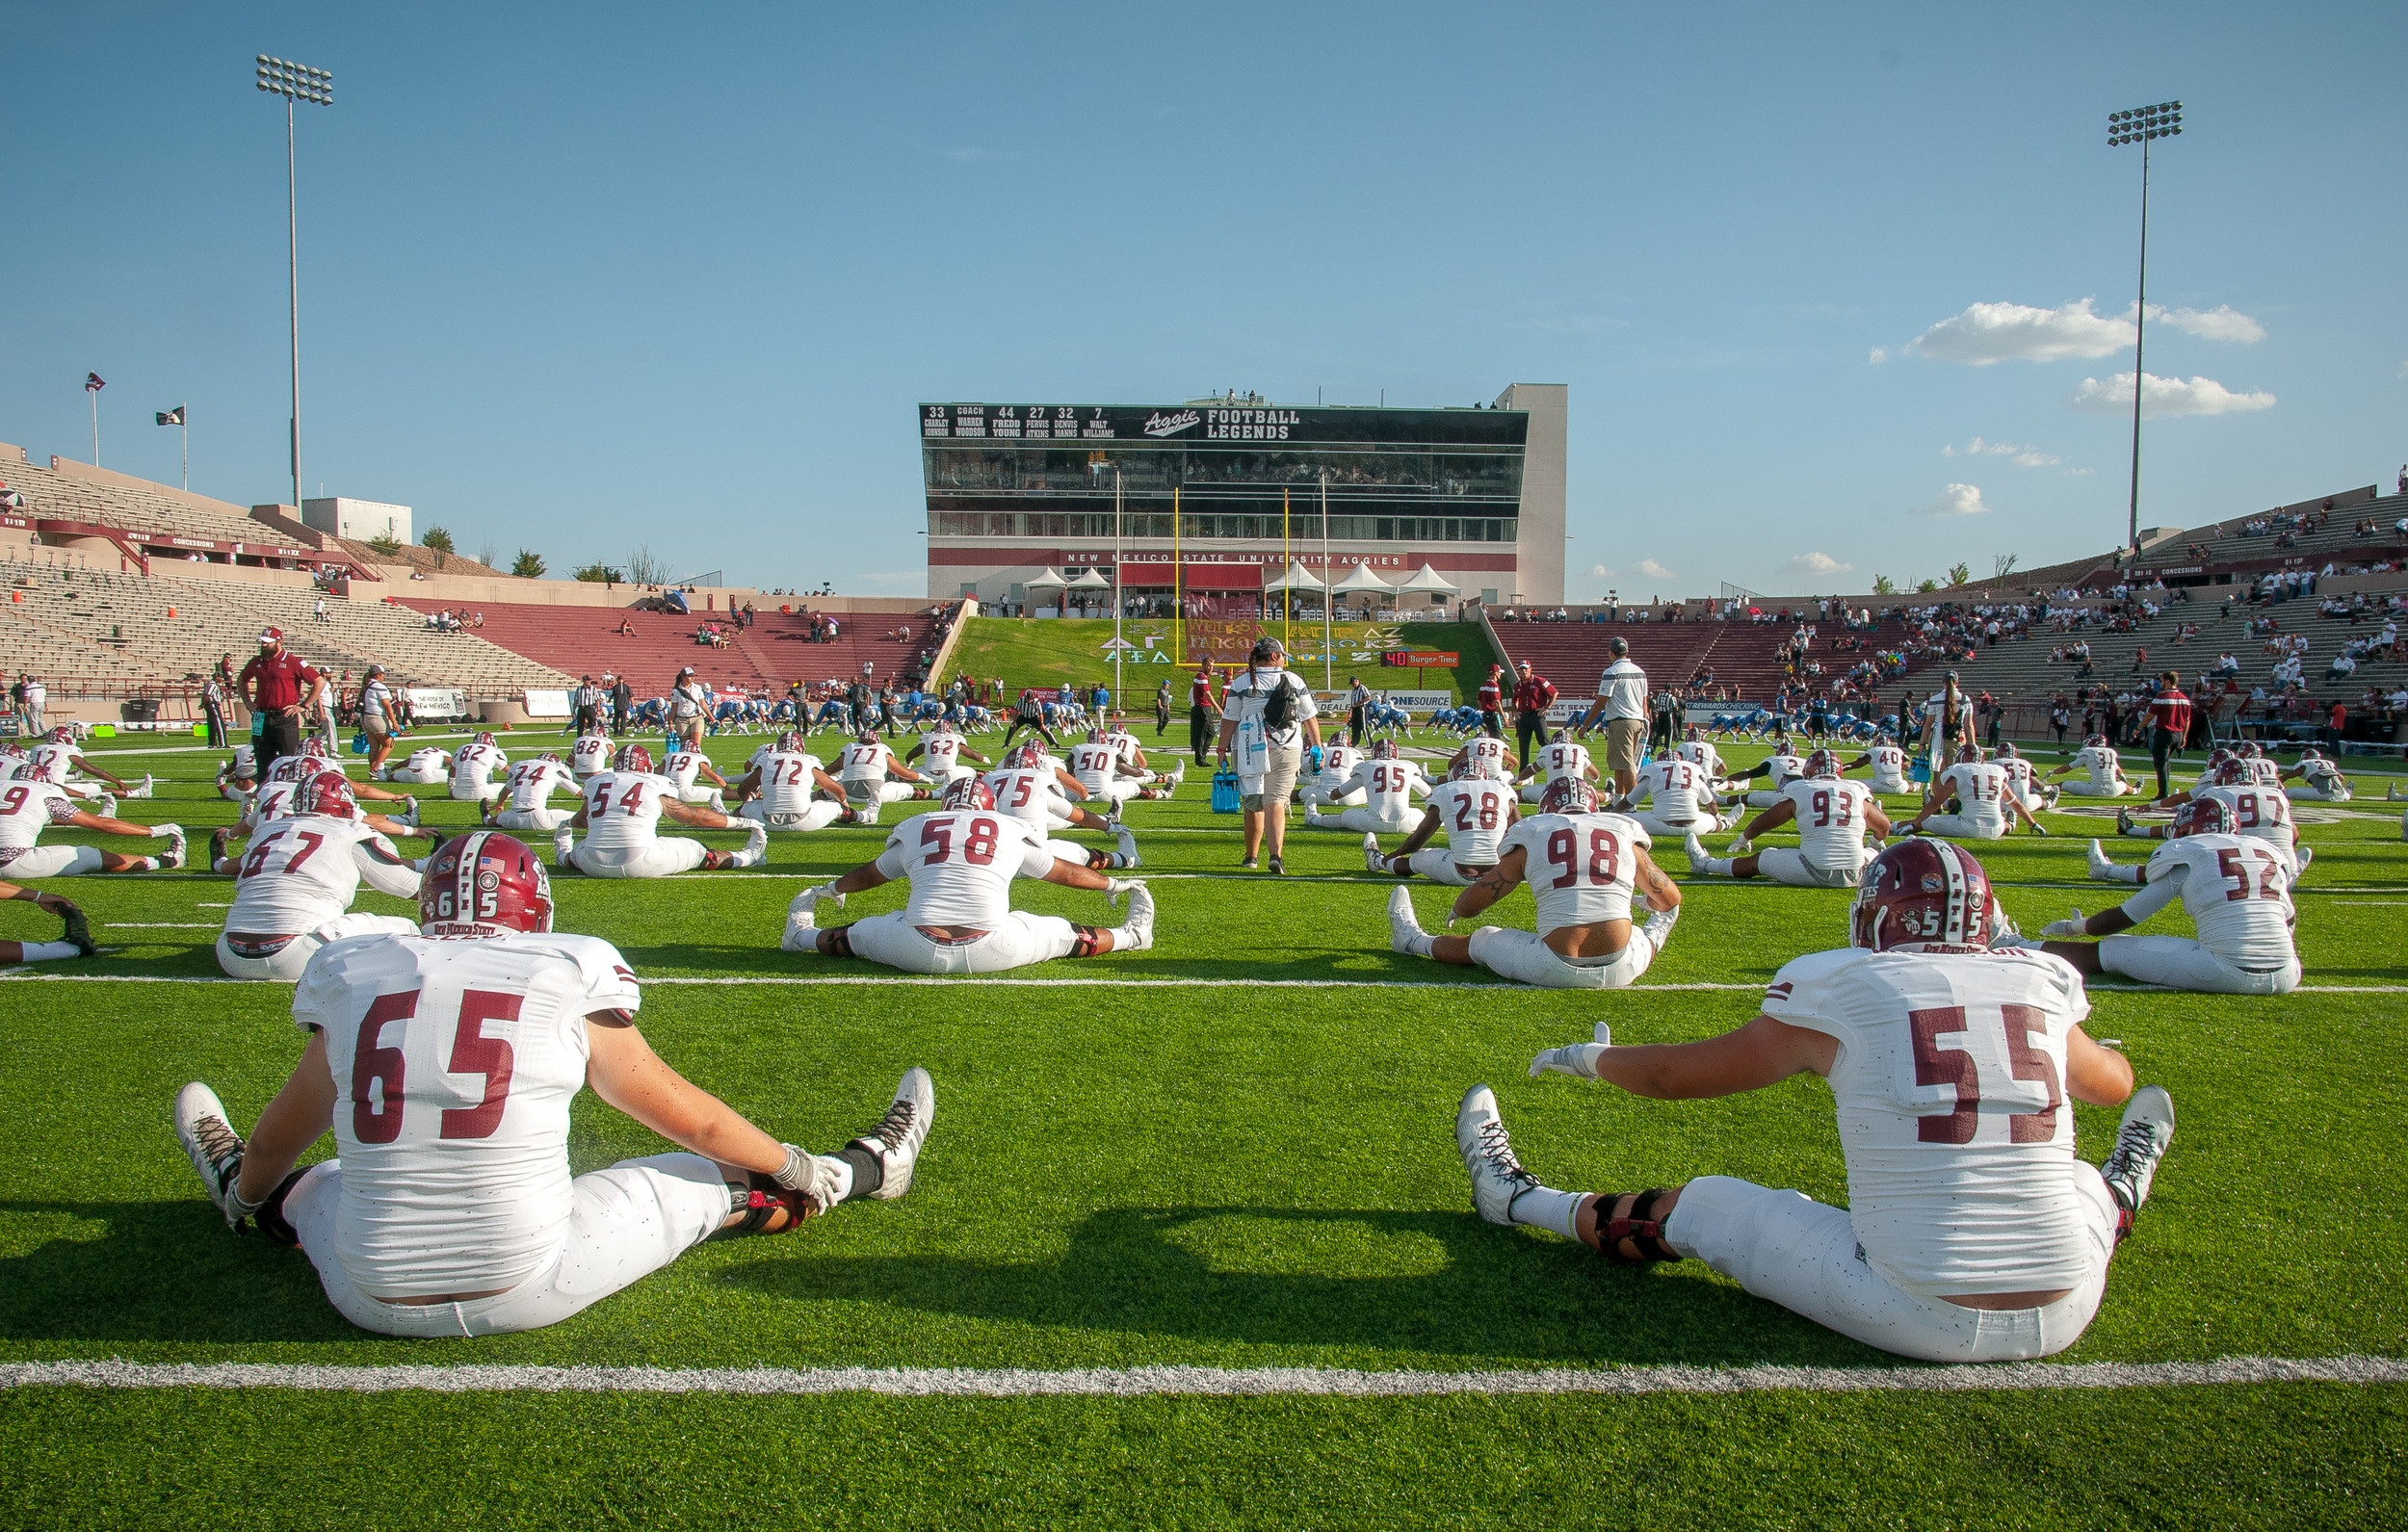 NMSU football players warm up on the field at Aggie Memorial Stadium before the start of the Aggies versus Georgia State Panthers game.